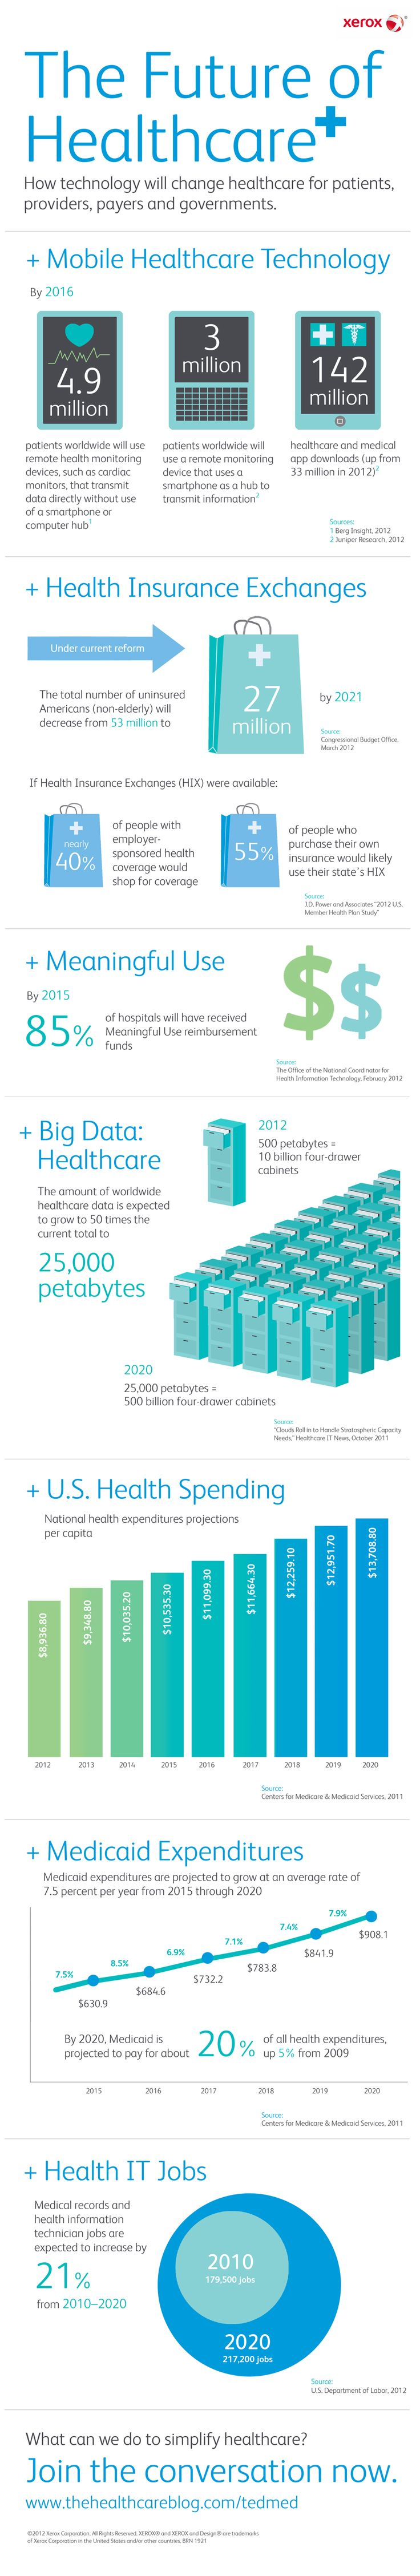 The Future of Healthcare [how technology will change healthcare for patients, providers, payers and governments]